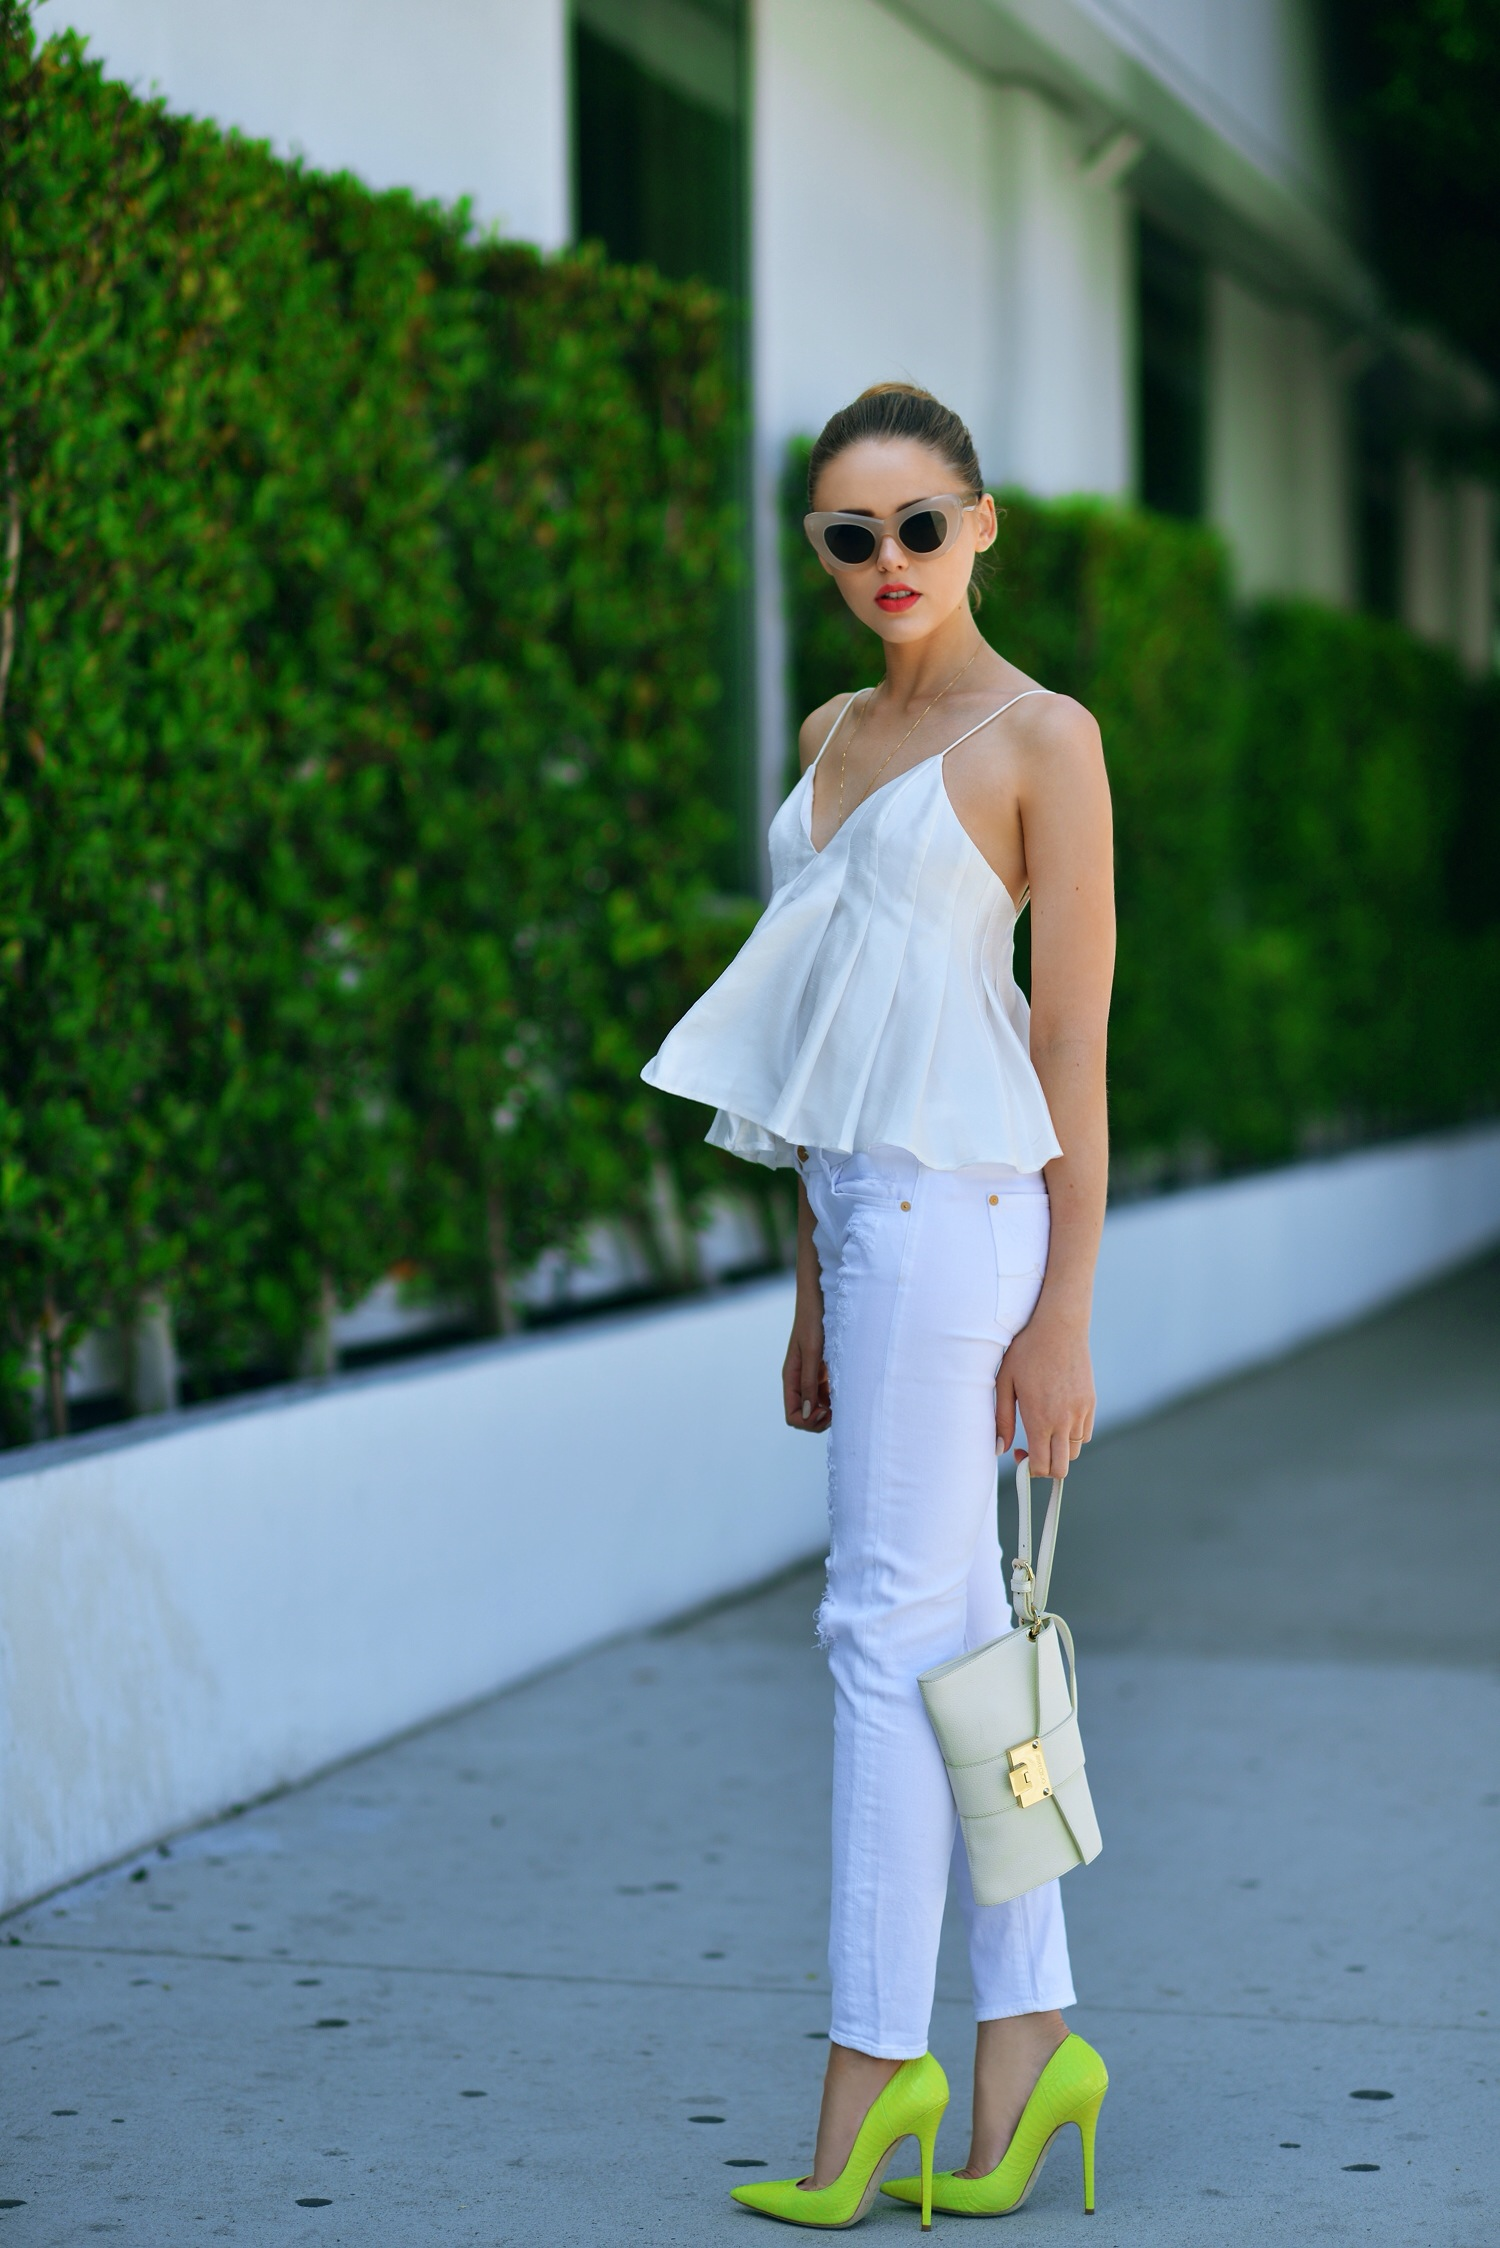 Kayture Is Wearing White Top From Finders Keepers, White Jeans From 7 For All Mankind, Lime Coloured Shoes And Clutch From Jimmy Choo, Sunglasses From Céline